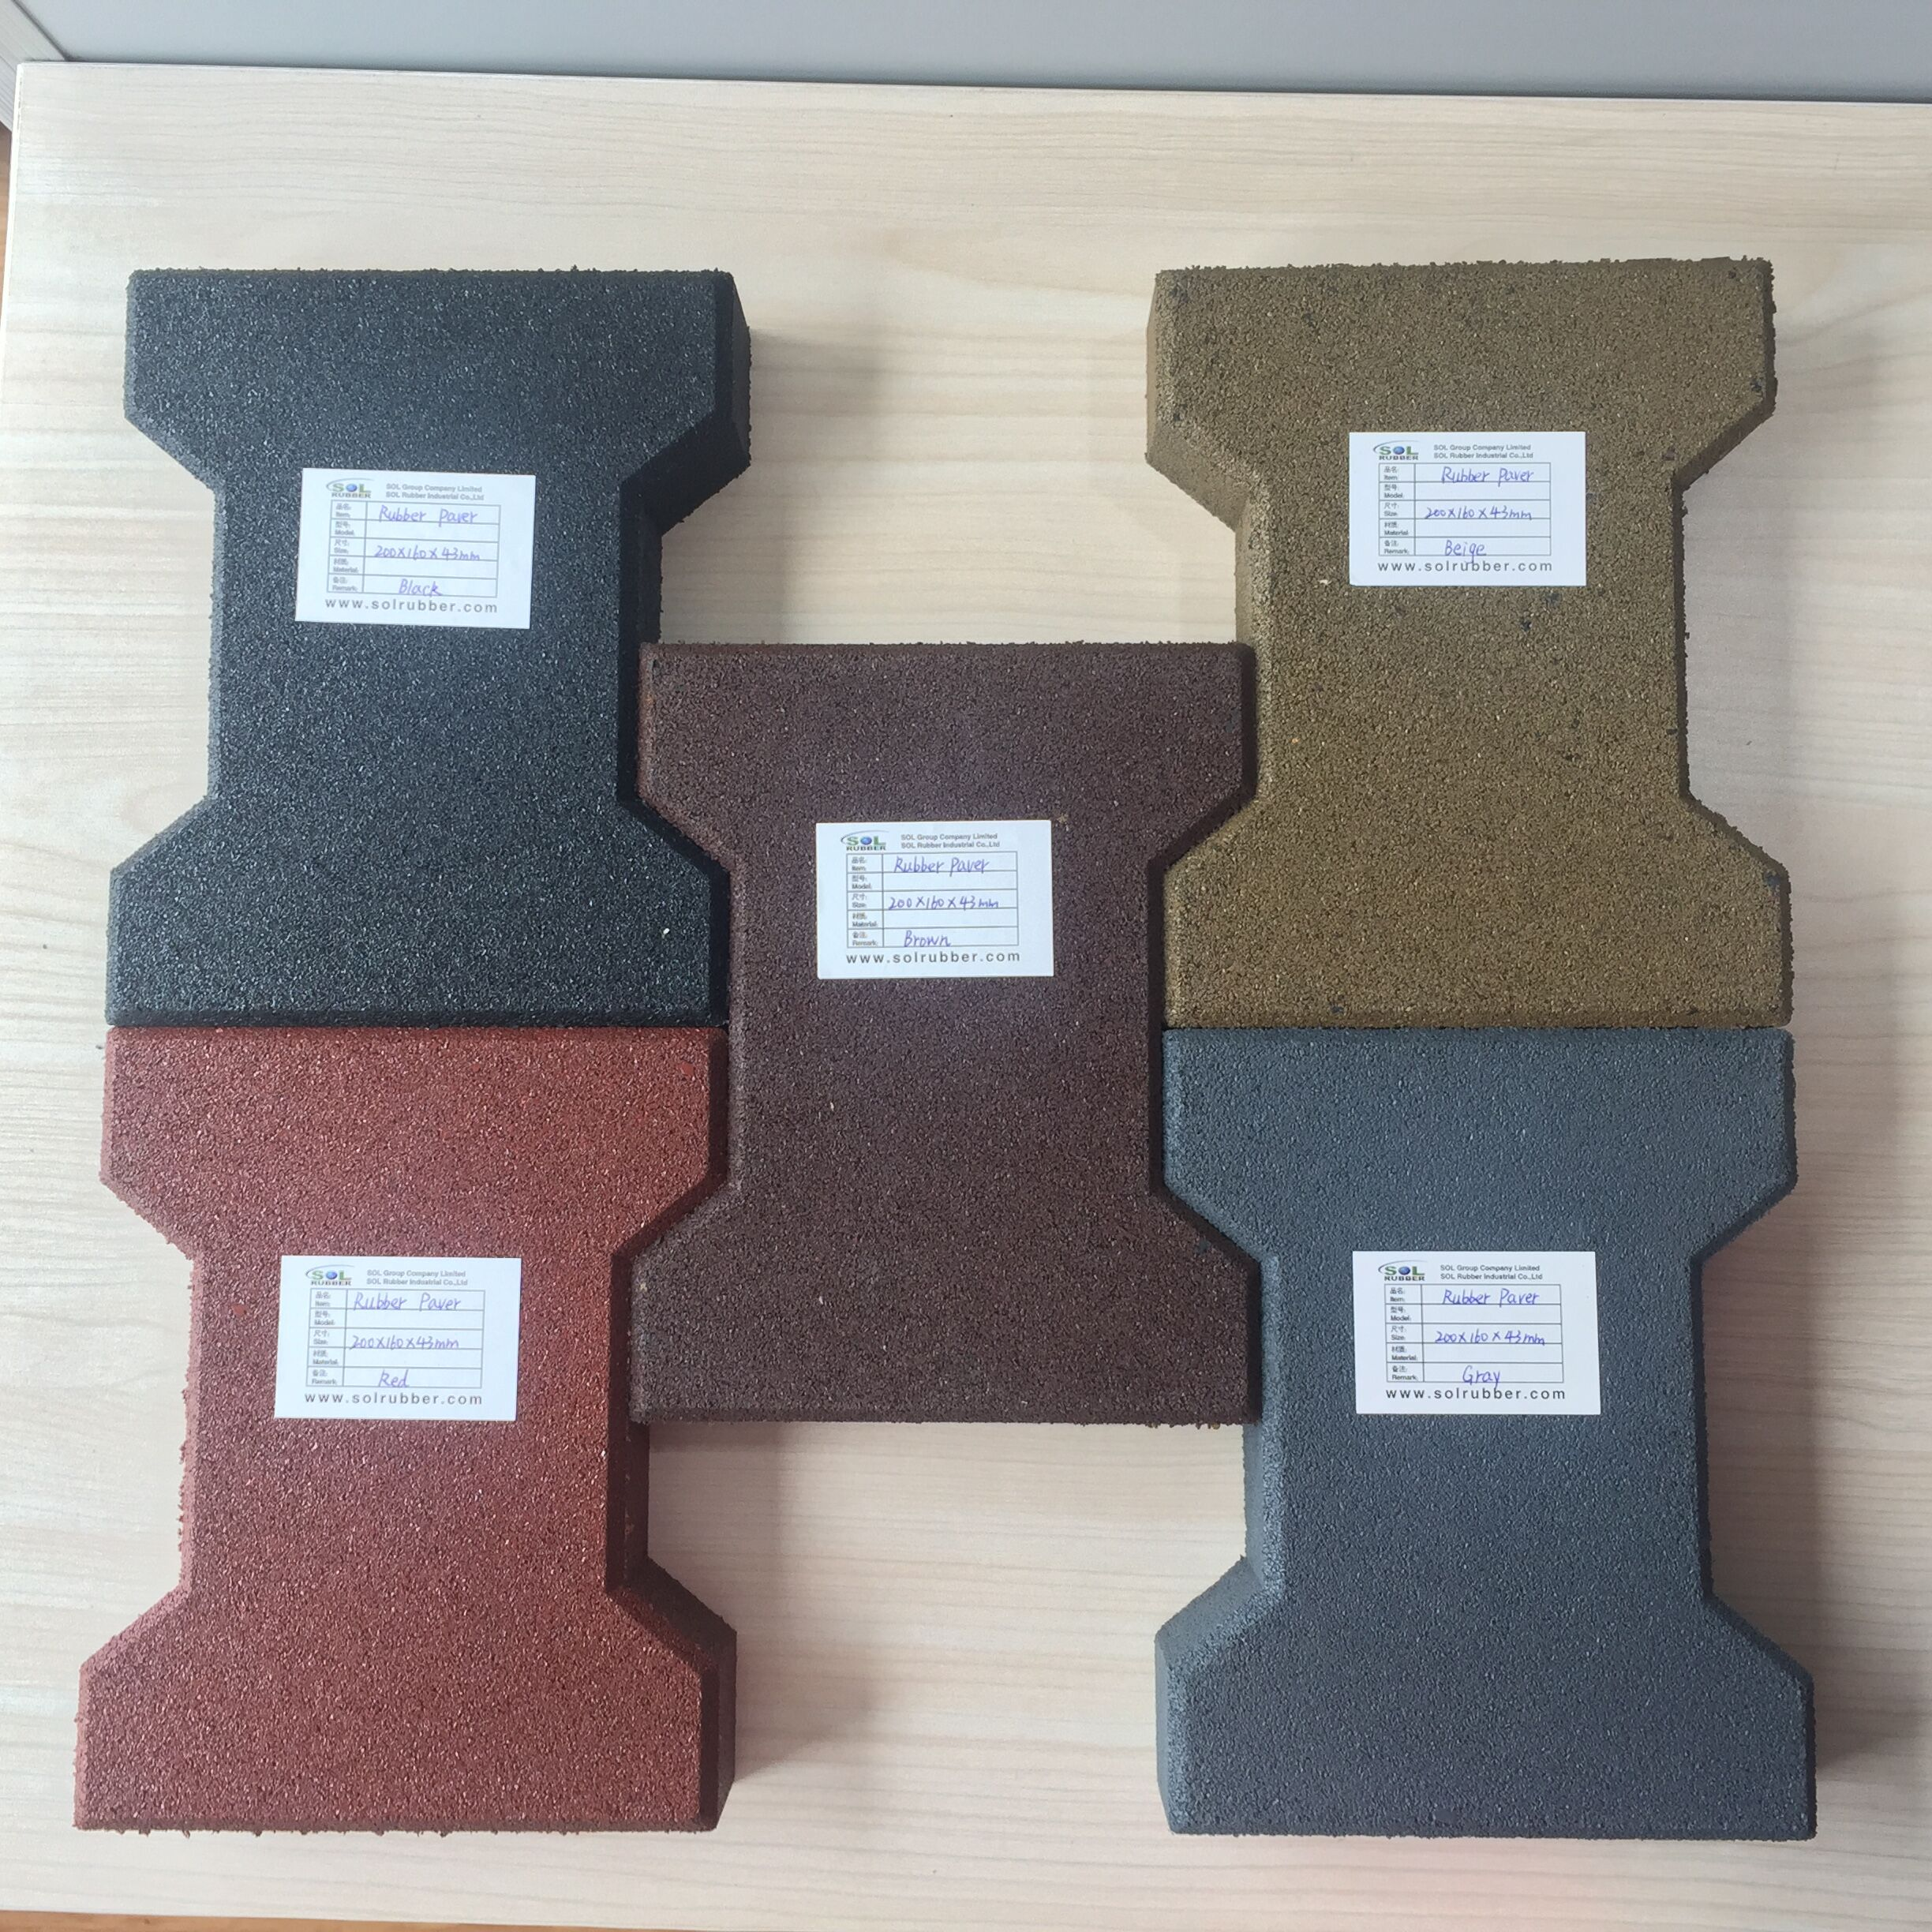 45mm Innovative Horse Solutions Equine Rubber Pavers